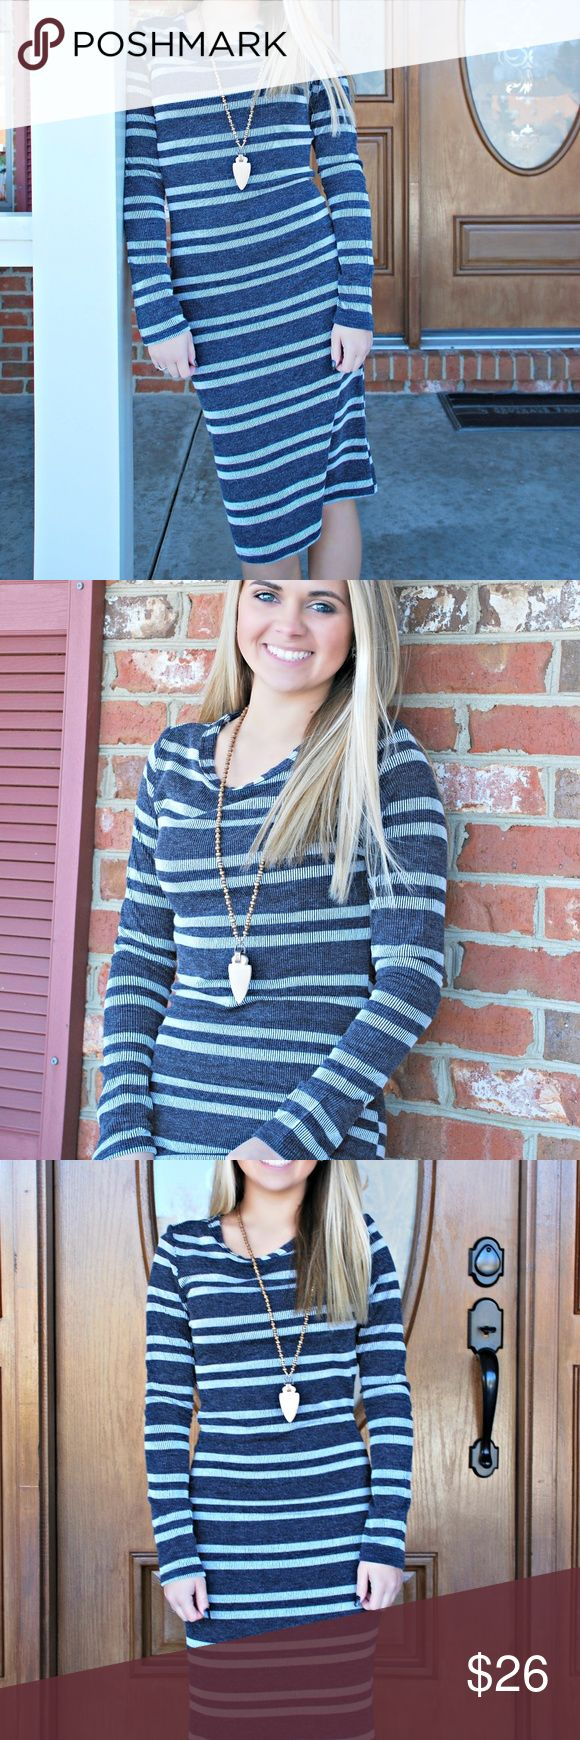 Navy Stripe Dress This navy striped dress is a SEXY fitting but still classy with its LONGER knee length hem. Stone Pony Boutique Dresses